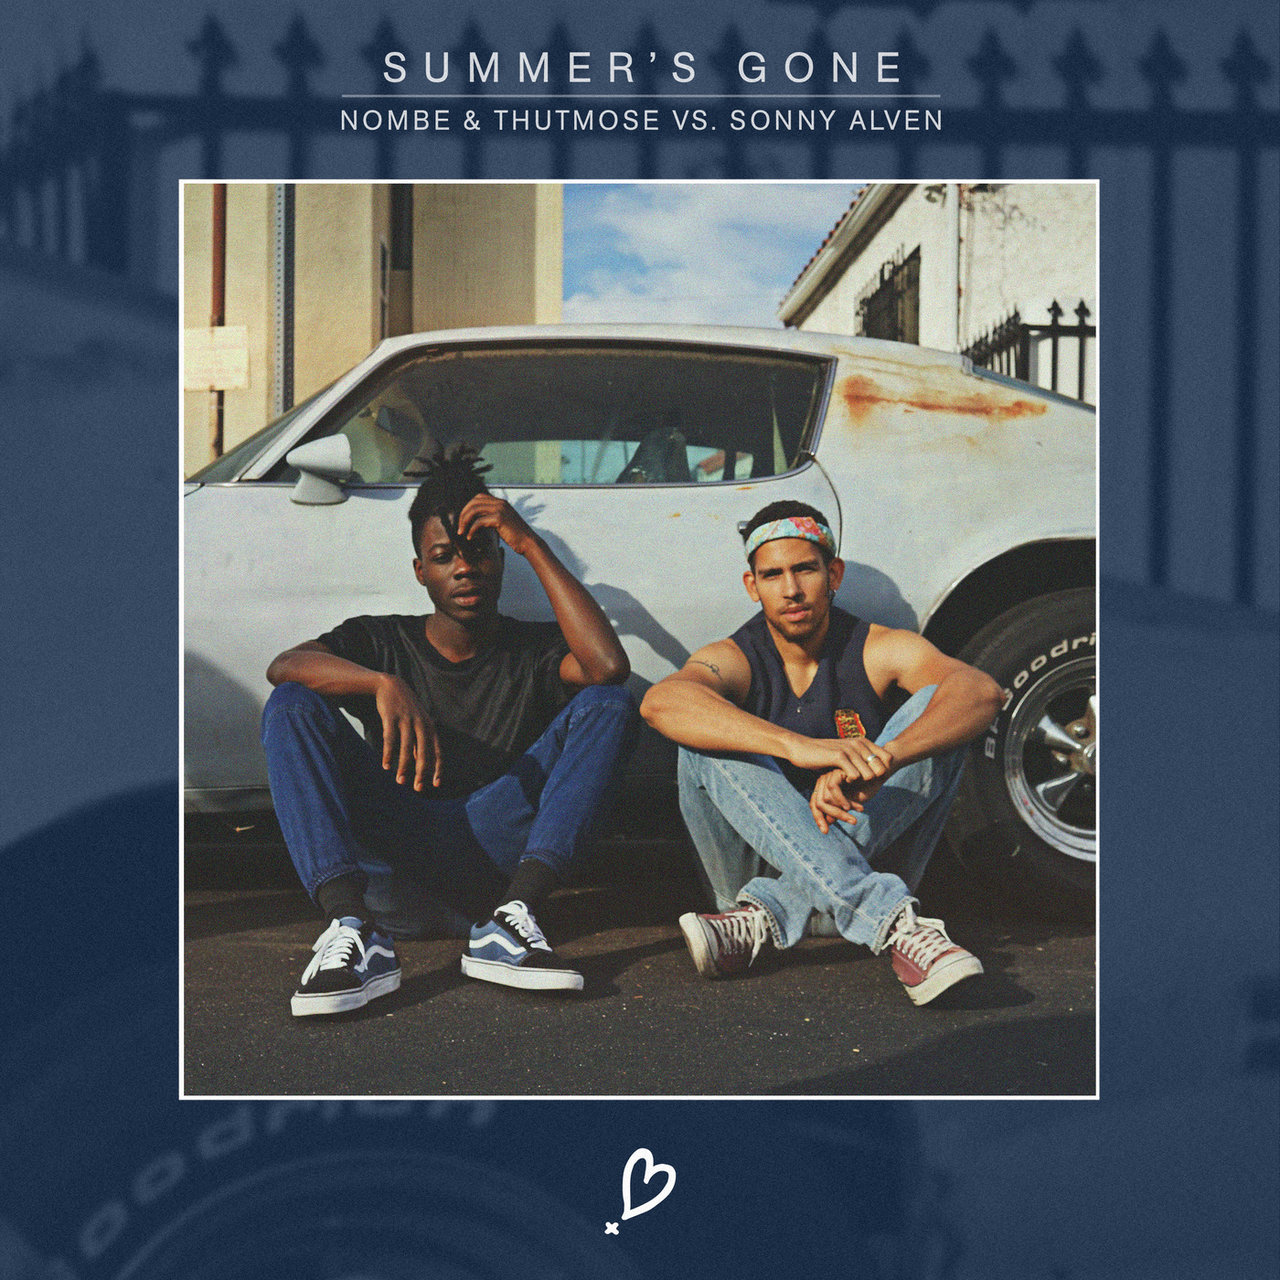 Summer's Gone (NoMBe & Thutmose vs. Sonny Alven)